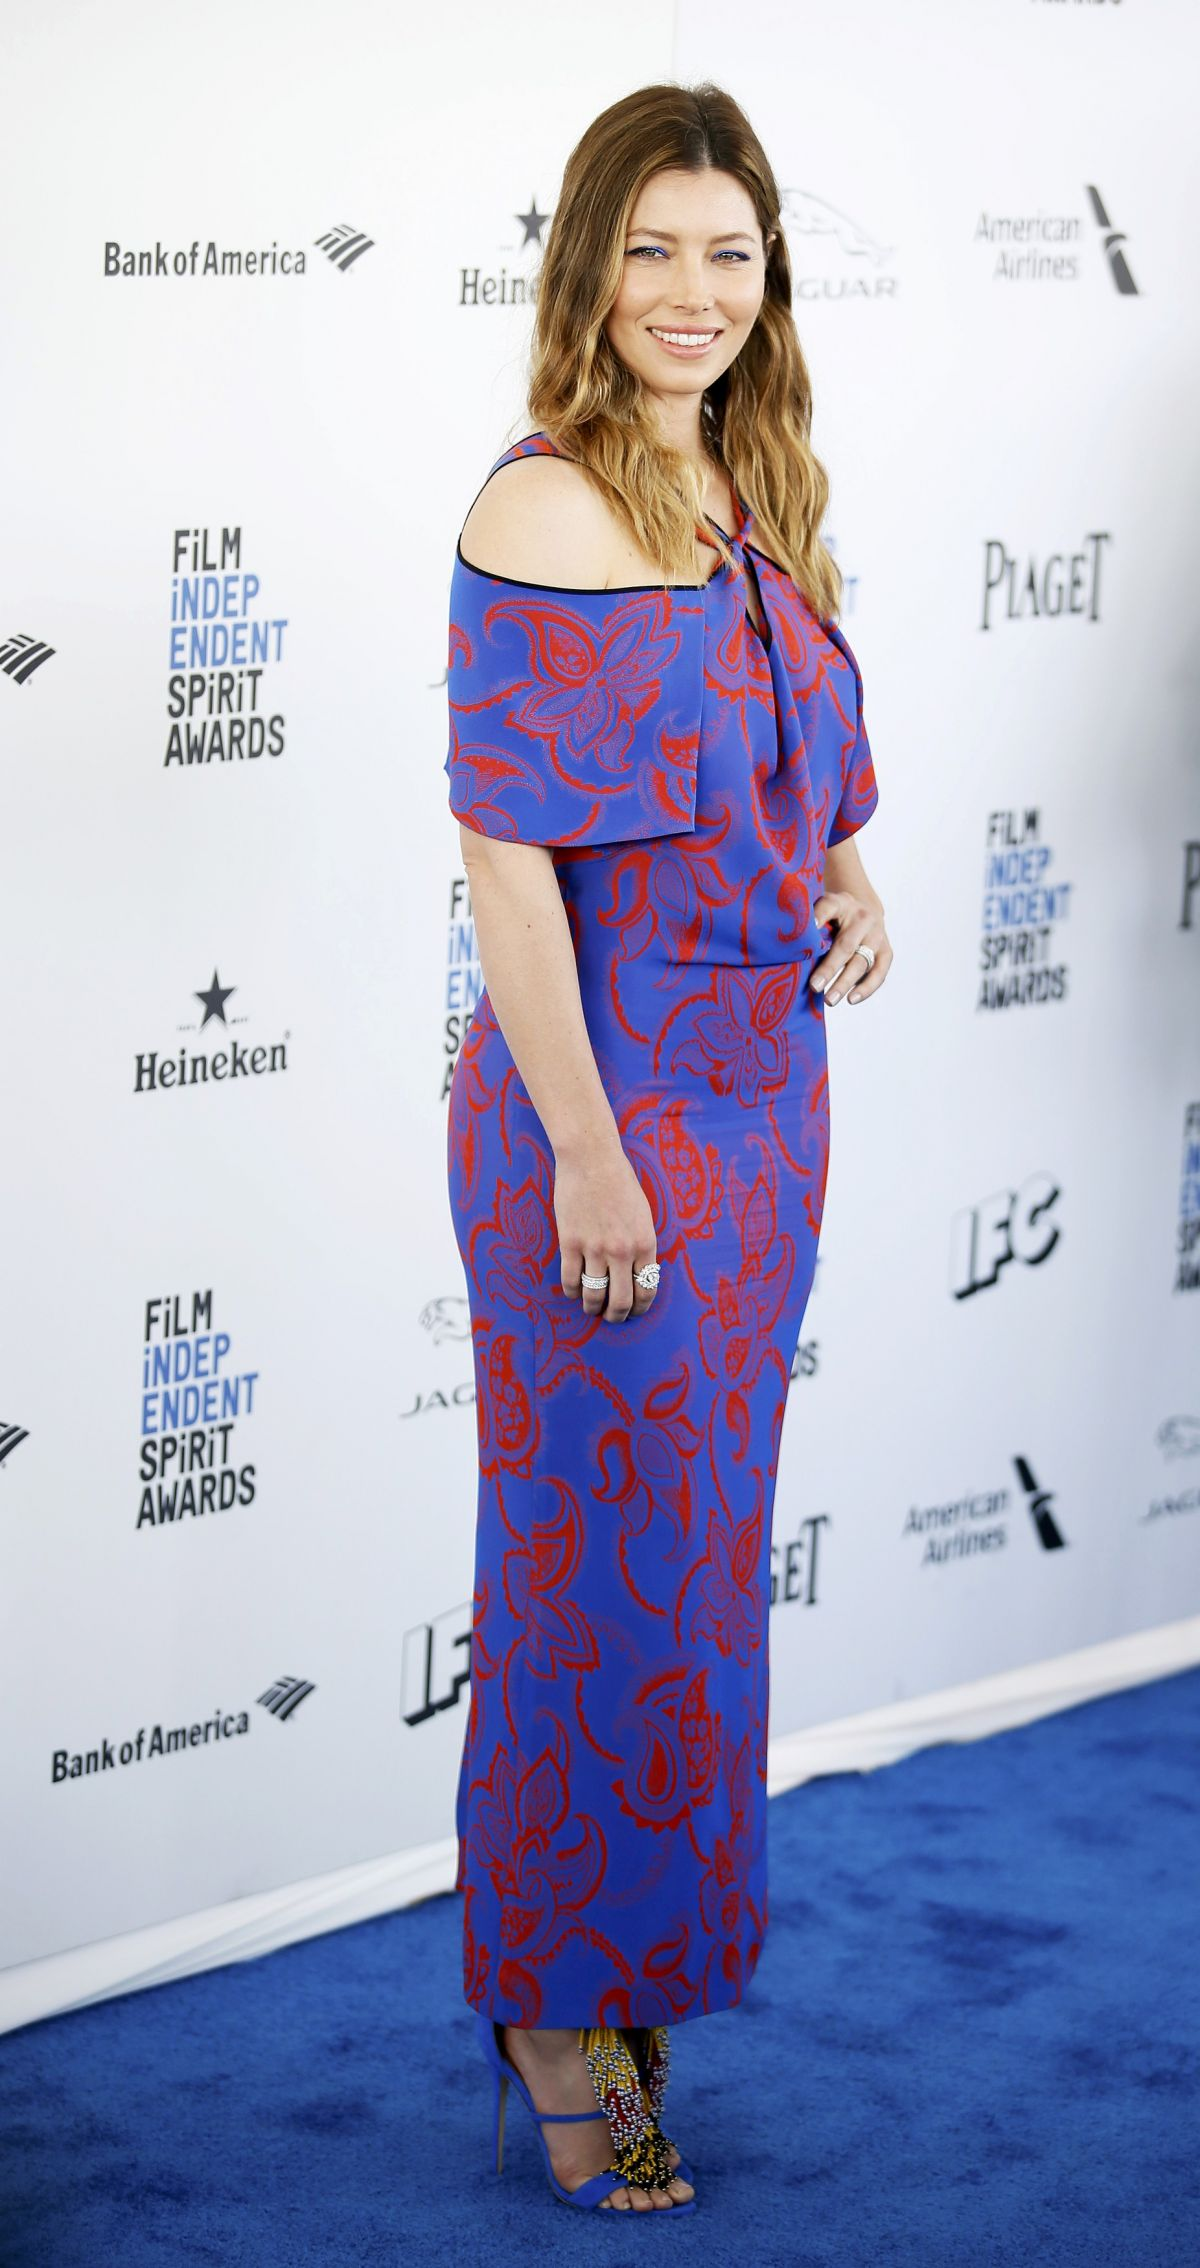 JESSICA BIEL at Film Independent Spirit Awards in Santa Monica 02/27 ... Jessica Biel